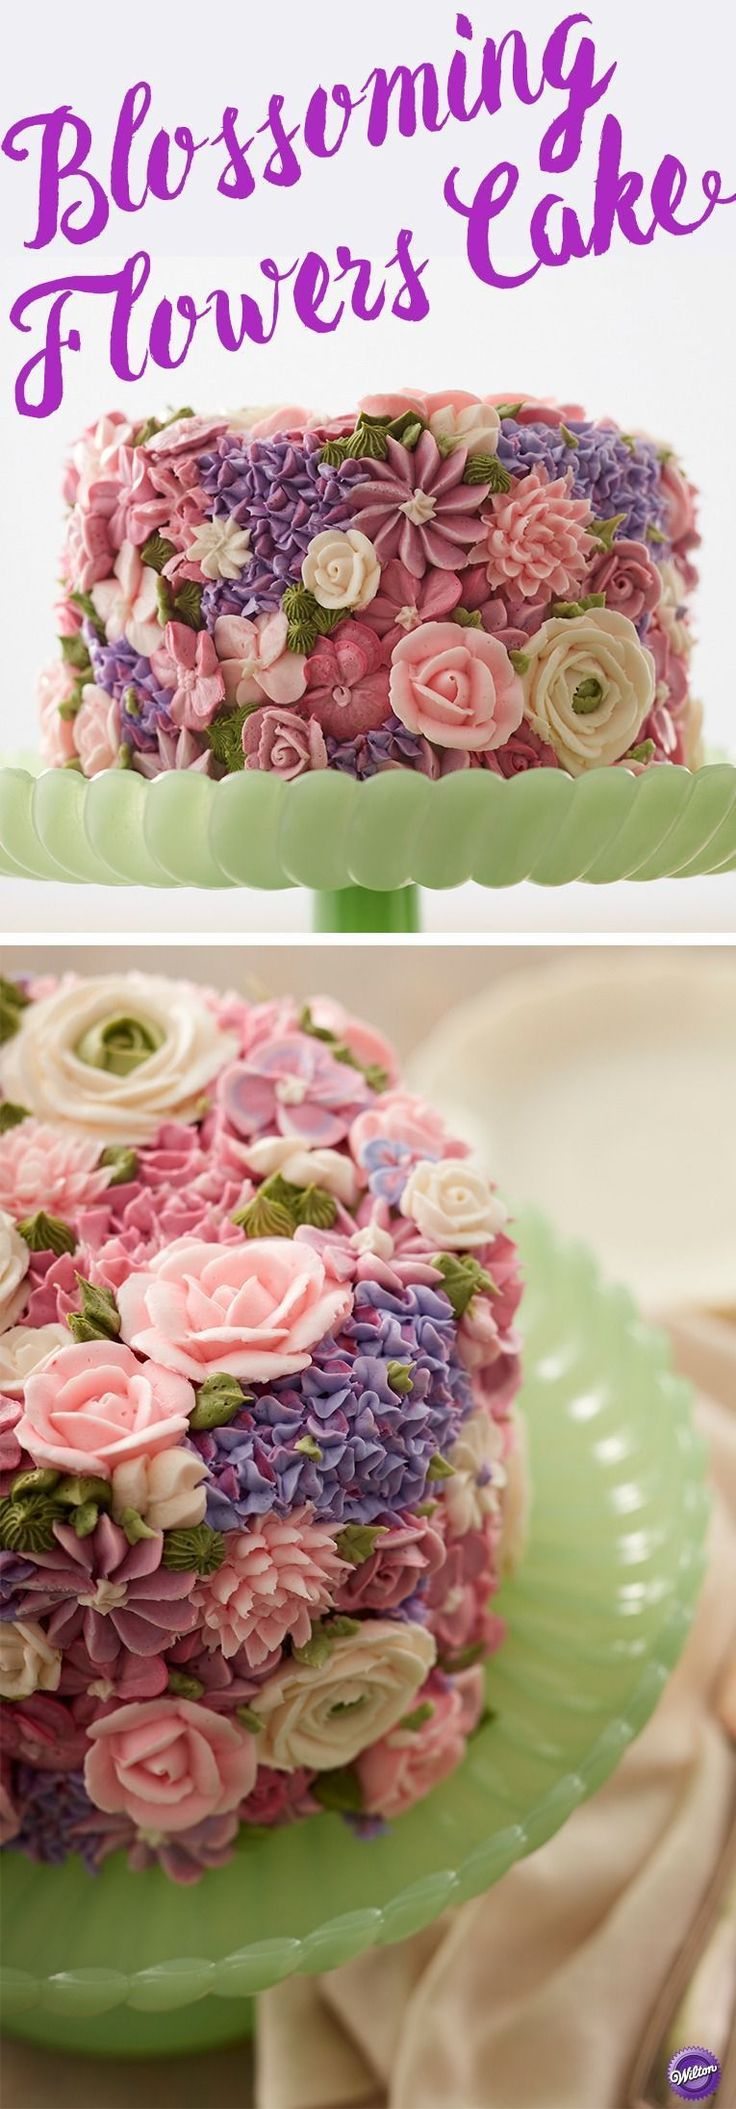 Buttercream flowers in pretty pastels create a garden of sweetness on this cake that's perfect for bridal showers, weddings, Easter or Mother's Day. Showcase your decorating skills using icing colors and the Master Tip Set to recreate this stunning cake. #flowercakes #cakedecoratingtips #weddingtips